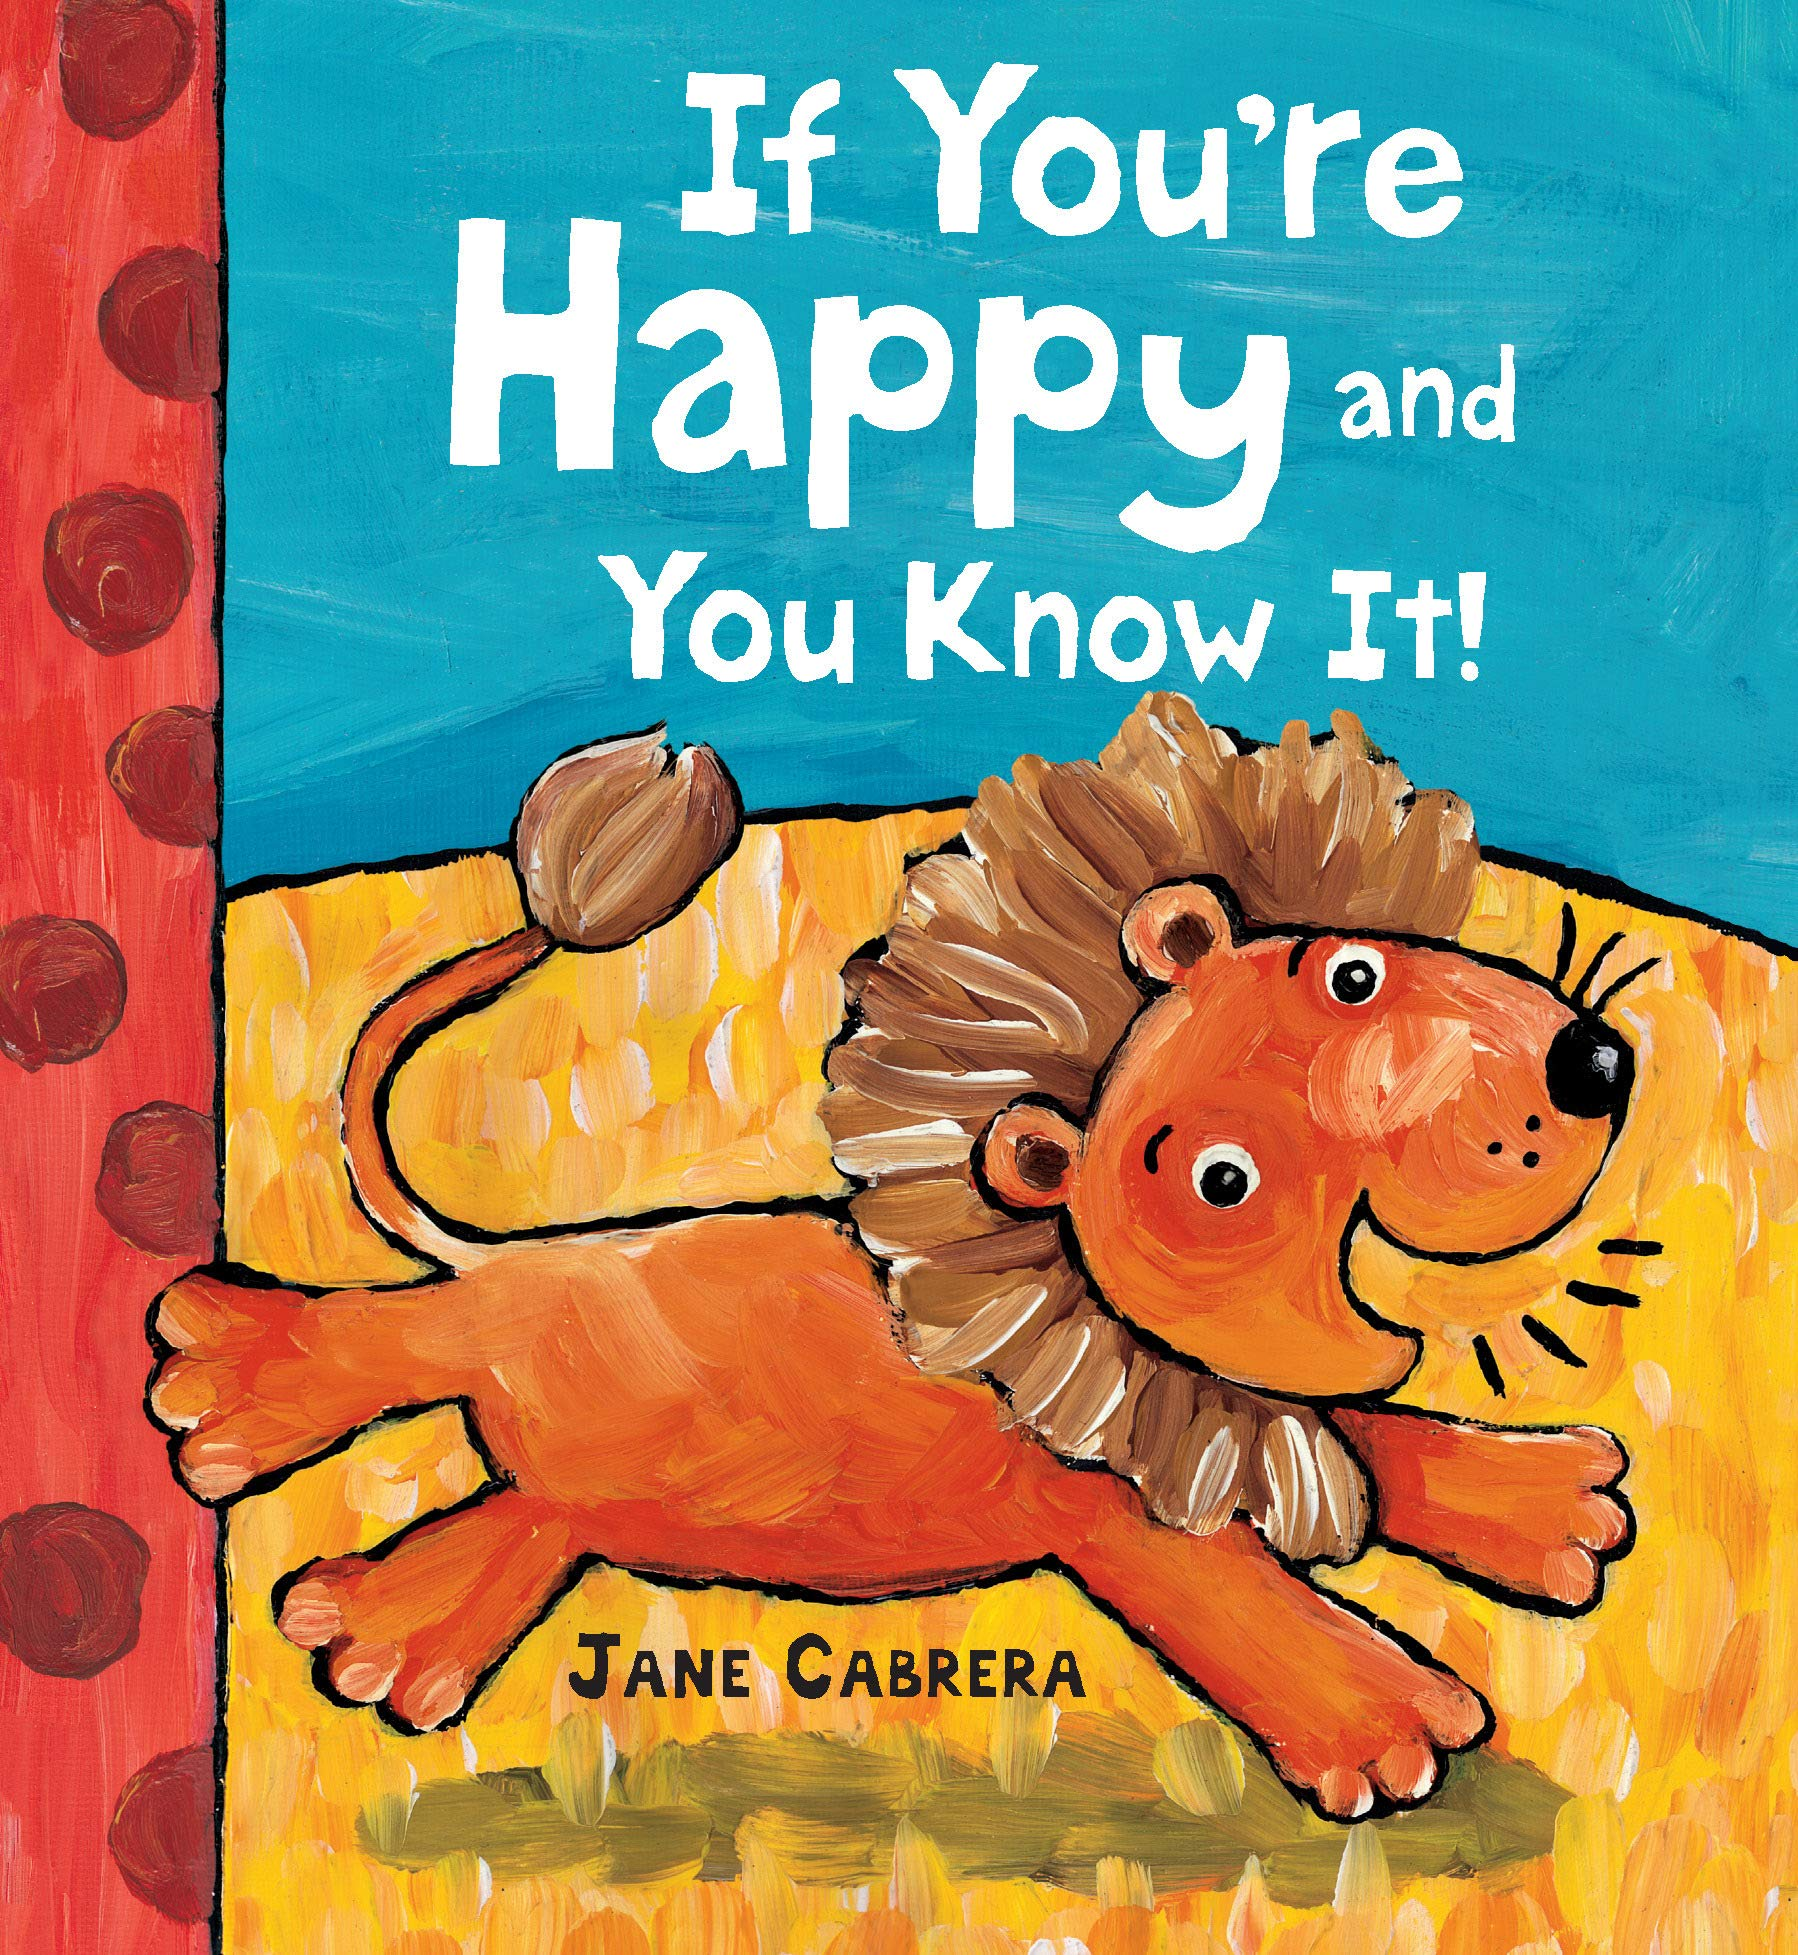 Amazon.com: If Youre Happy and You Know It (9780823444649 ...